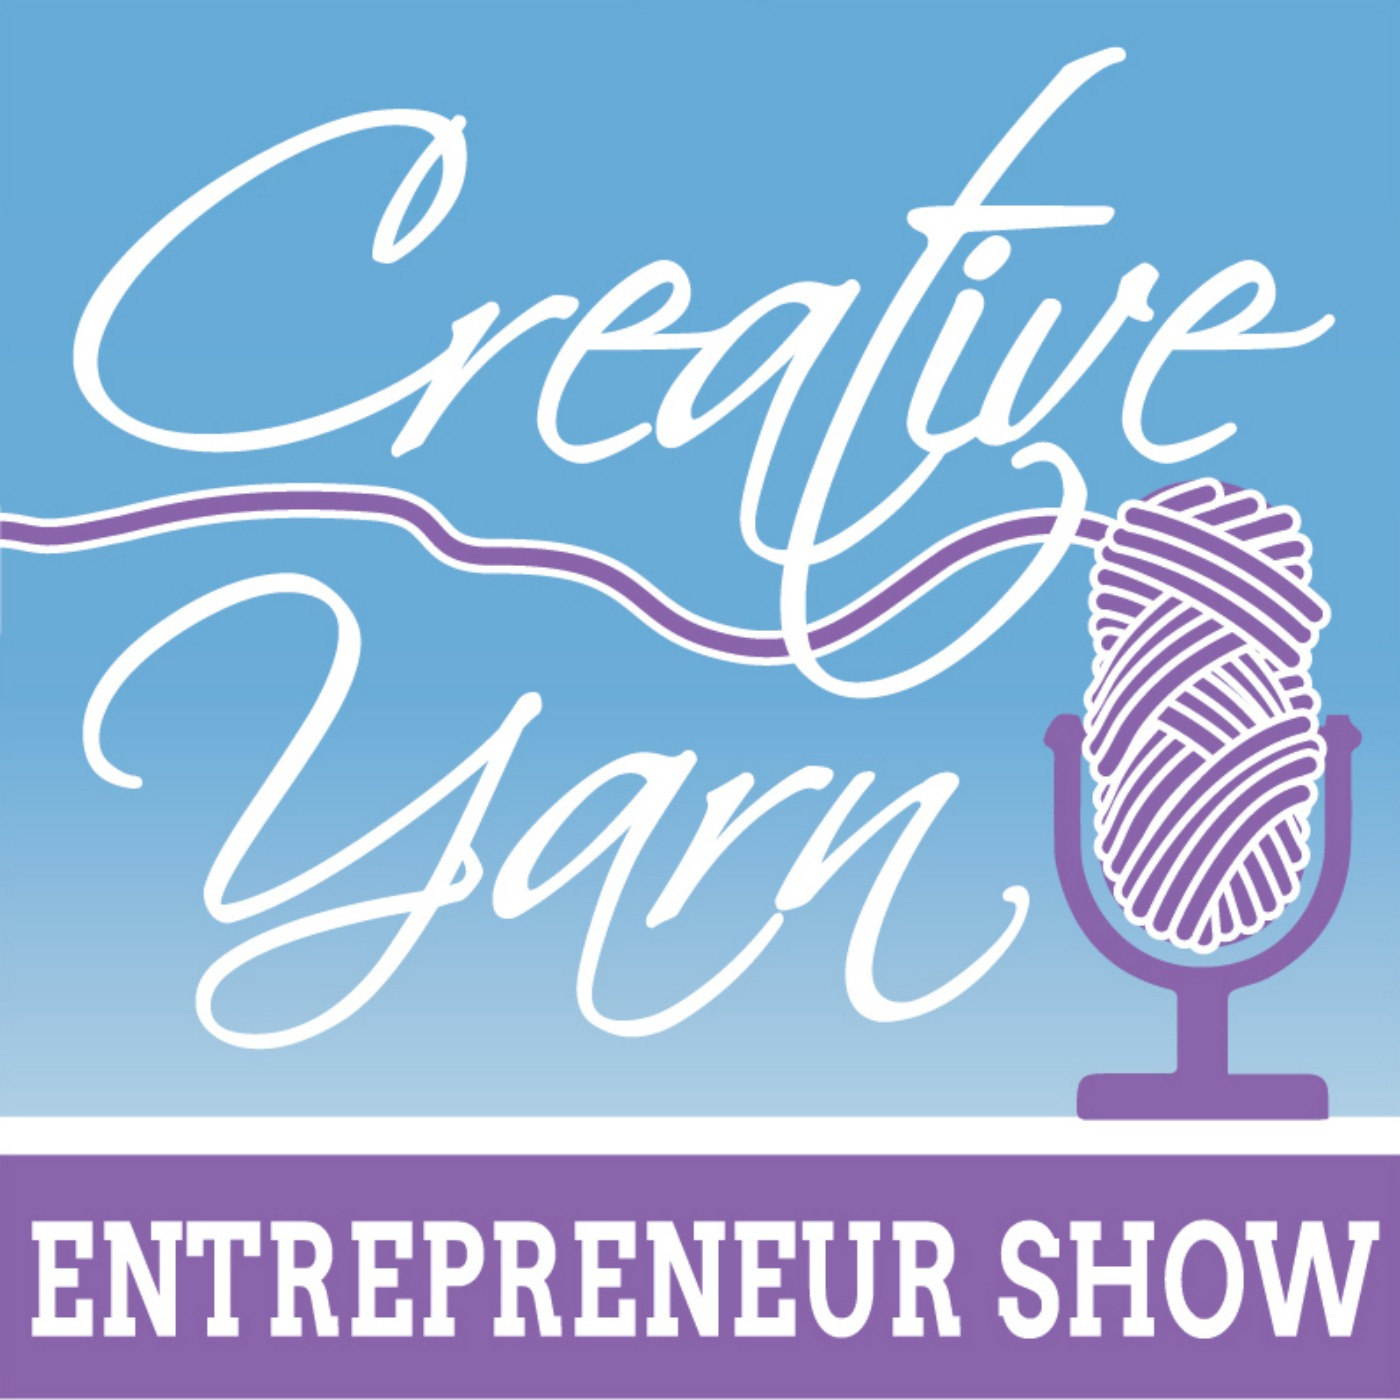 Bonus Episode: Managing Your Business While Being a Mom with Lane Kennedy - The Creative Yarn Entrepreneur Show